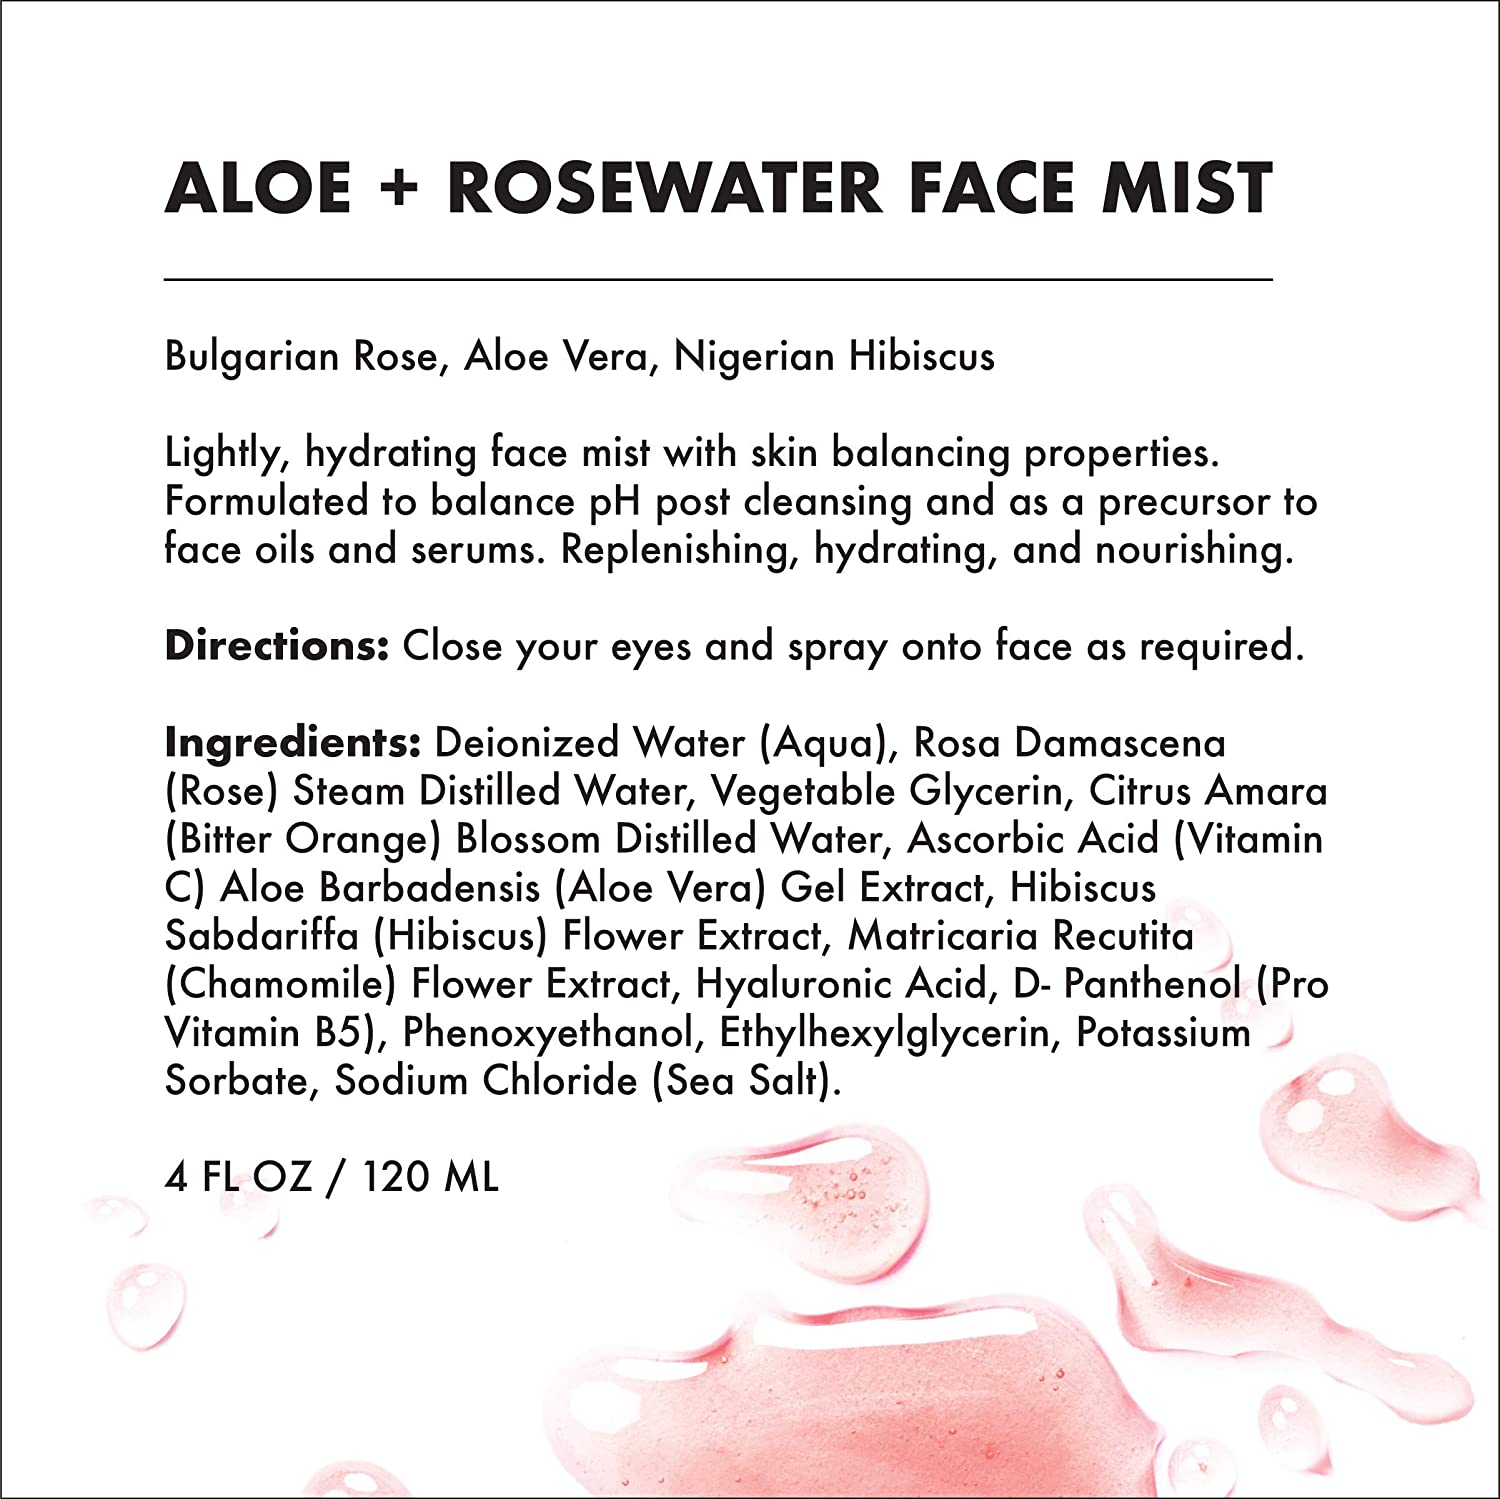 Provence Beauty Aloe Rosewater – Balancing, Refreshing Soothing Facial Mist – Infused with Bulgarian Rose, Aloe Vera, Nigerian Hibiscus – 4FL OZ